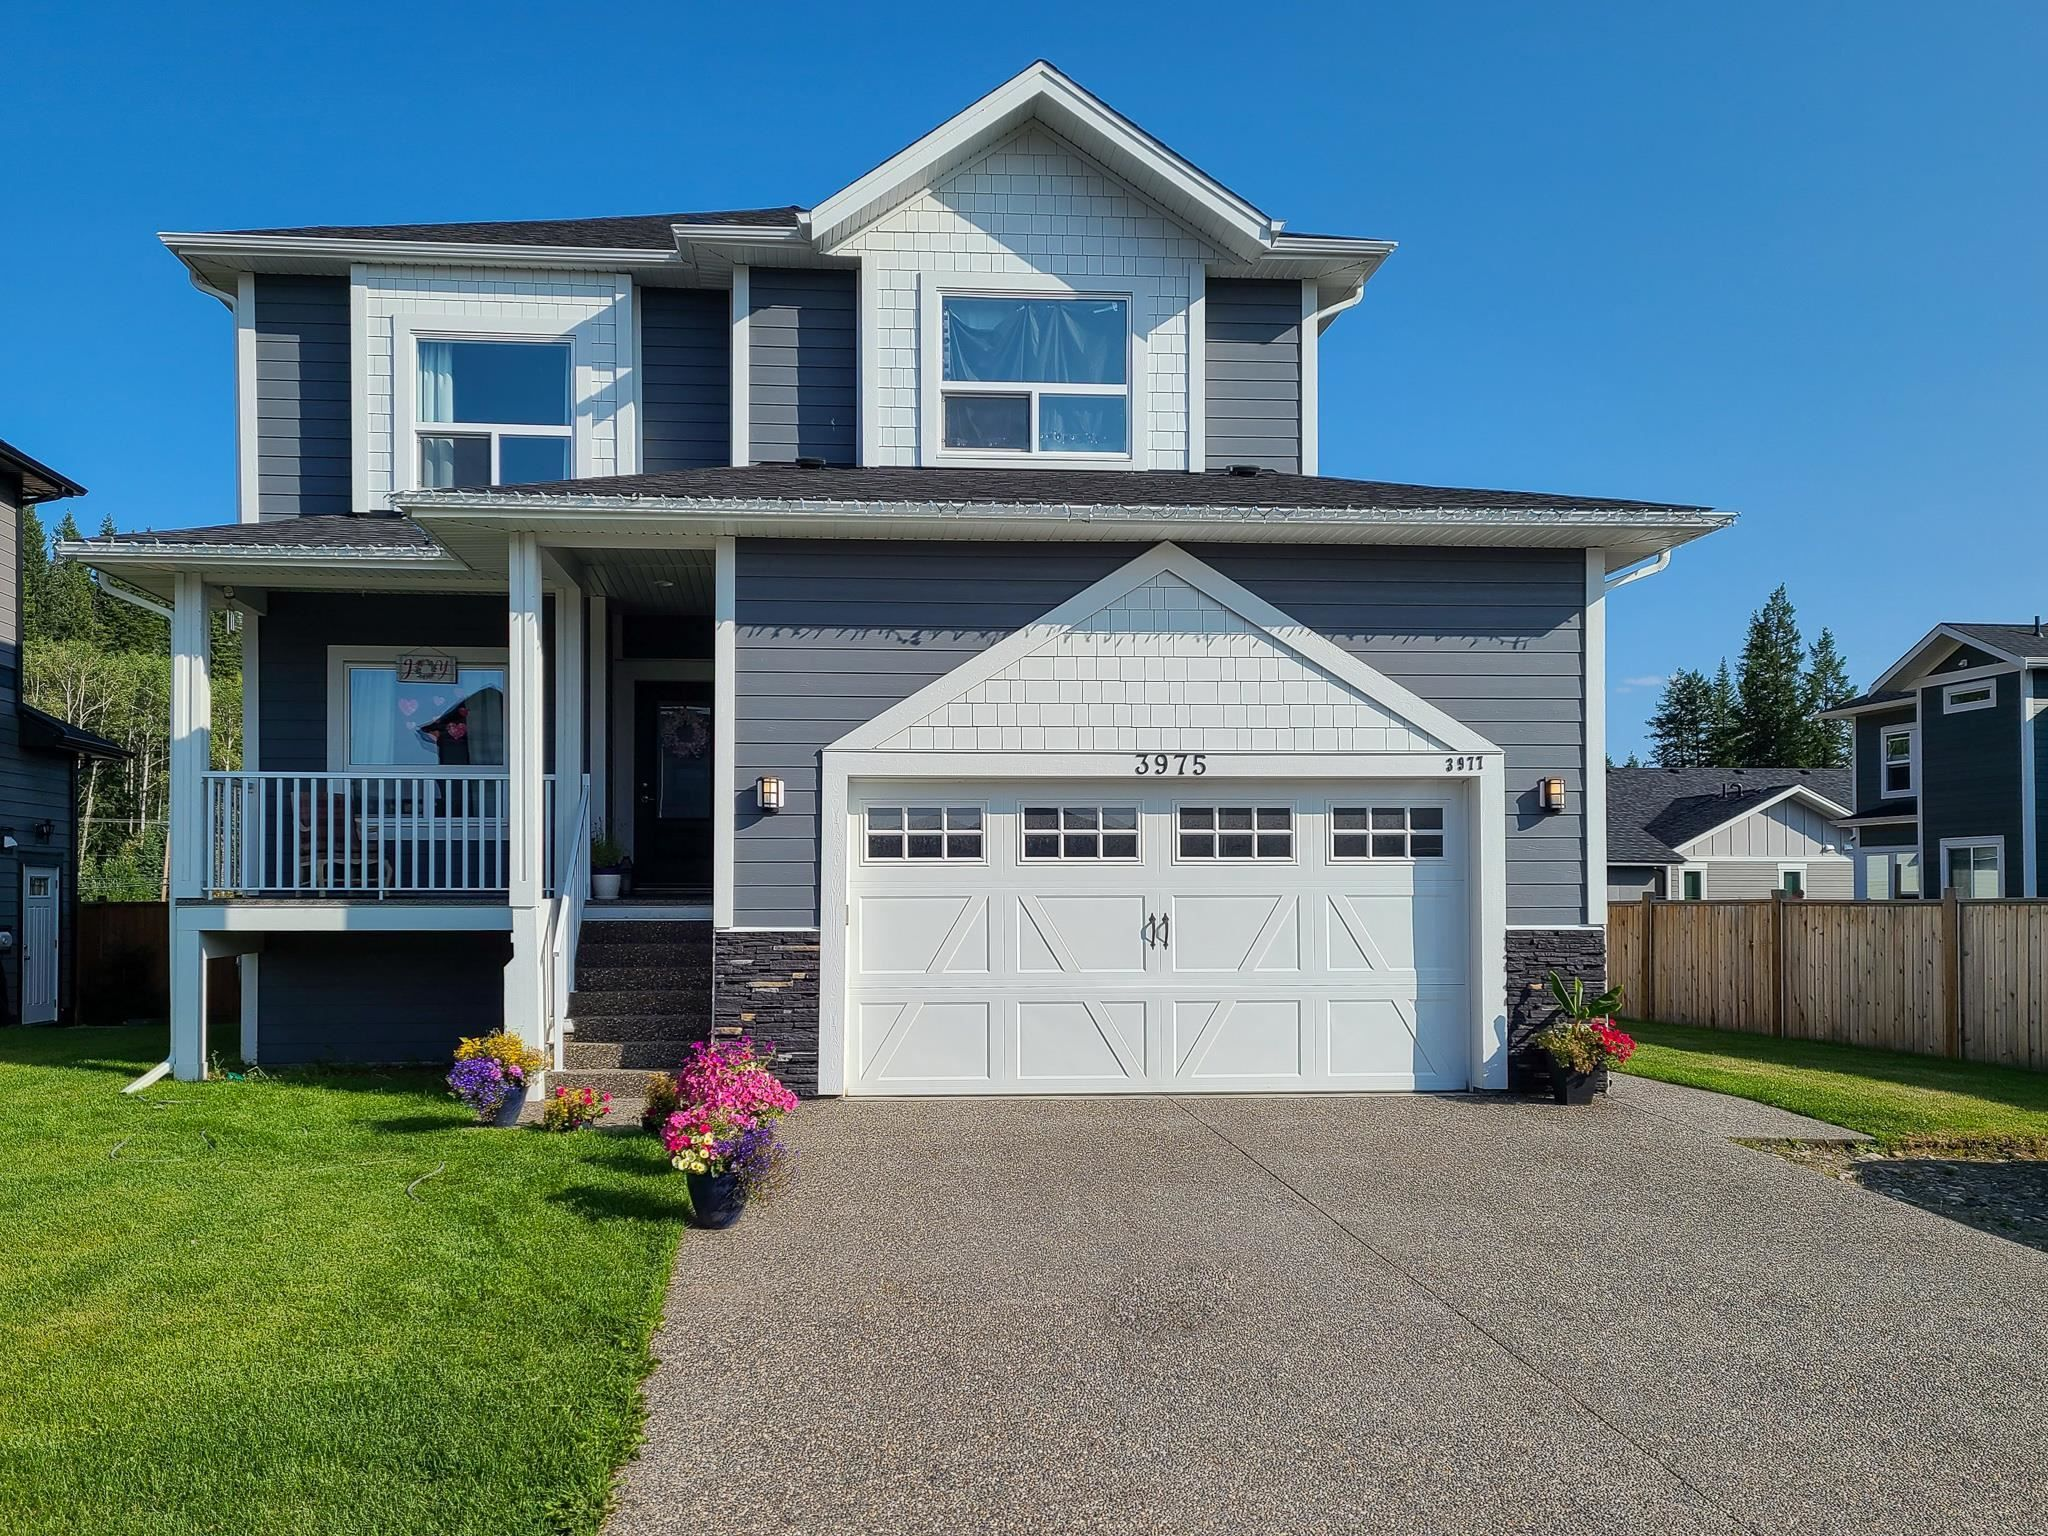 """Main Photo: 3975 AREND Drive in Prince George: Edgewood Terrace House for sale in """"EDGEWOOD TERRACE"""" (PG City North (Zone 73))  : MLS®# R2622639"""